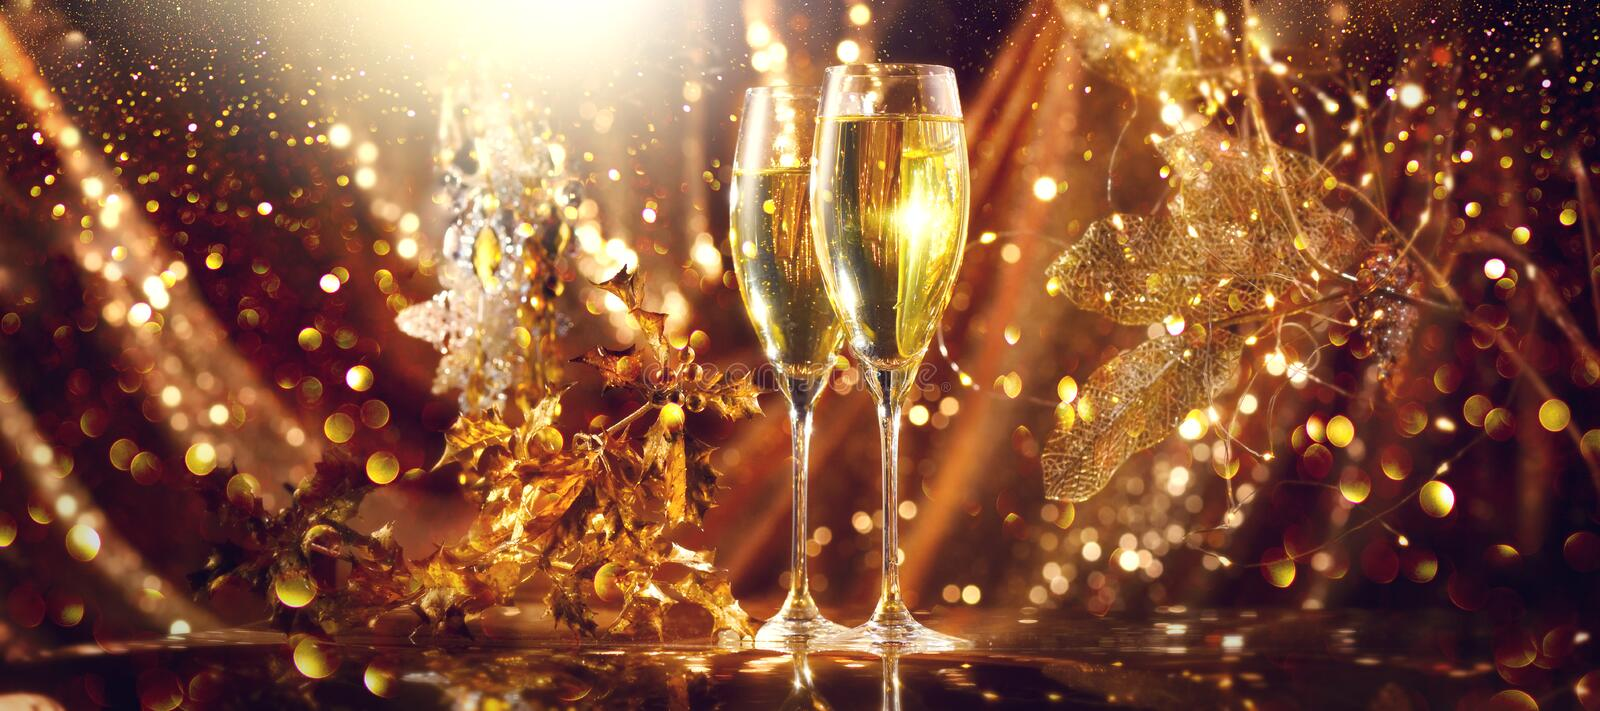 Holiday Champagne Flute over Golden glowing background. Christmas and New Year celebration. Two Flutes with Sparkling Wine stock photography